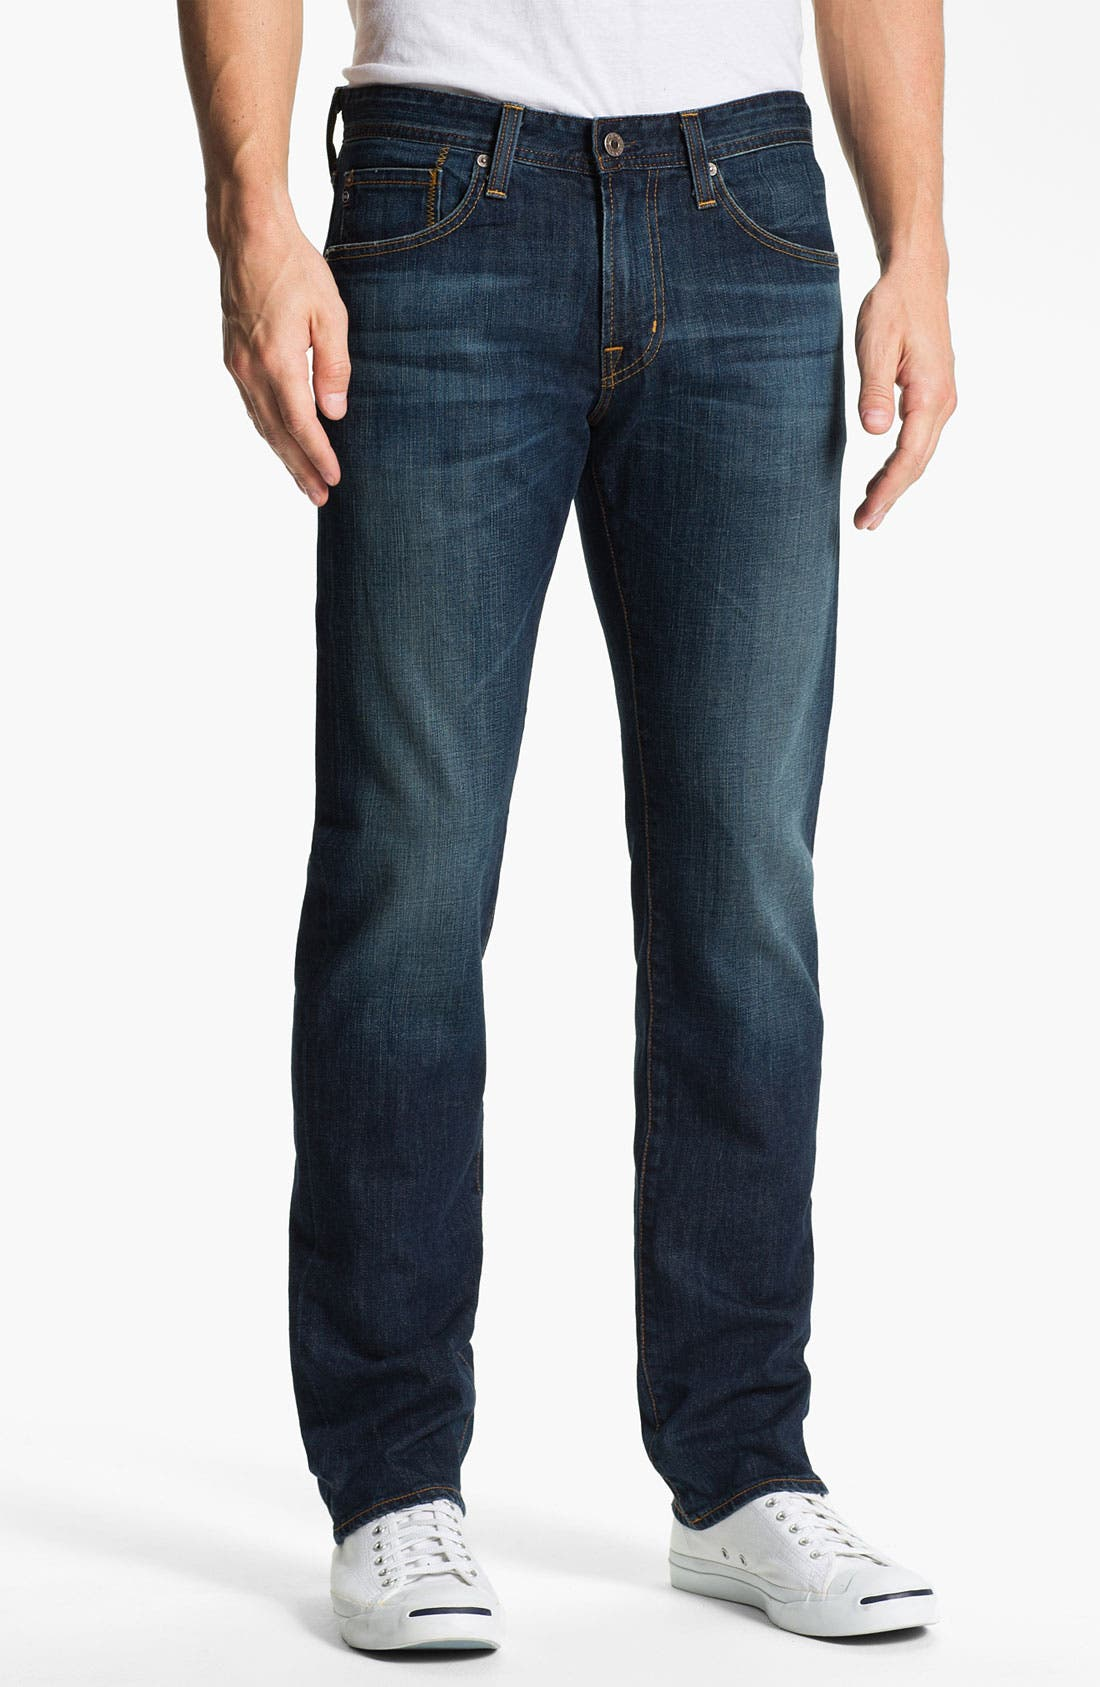 Alternate Image 1 Selected - AG Jeans 'Matchbox' Slim Straight Leg Jeans (District)